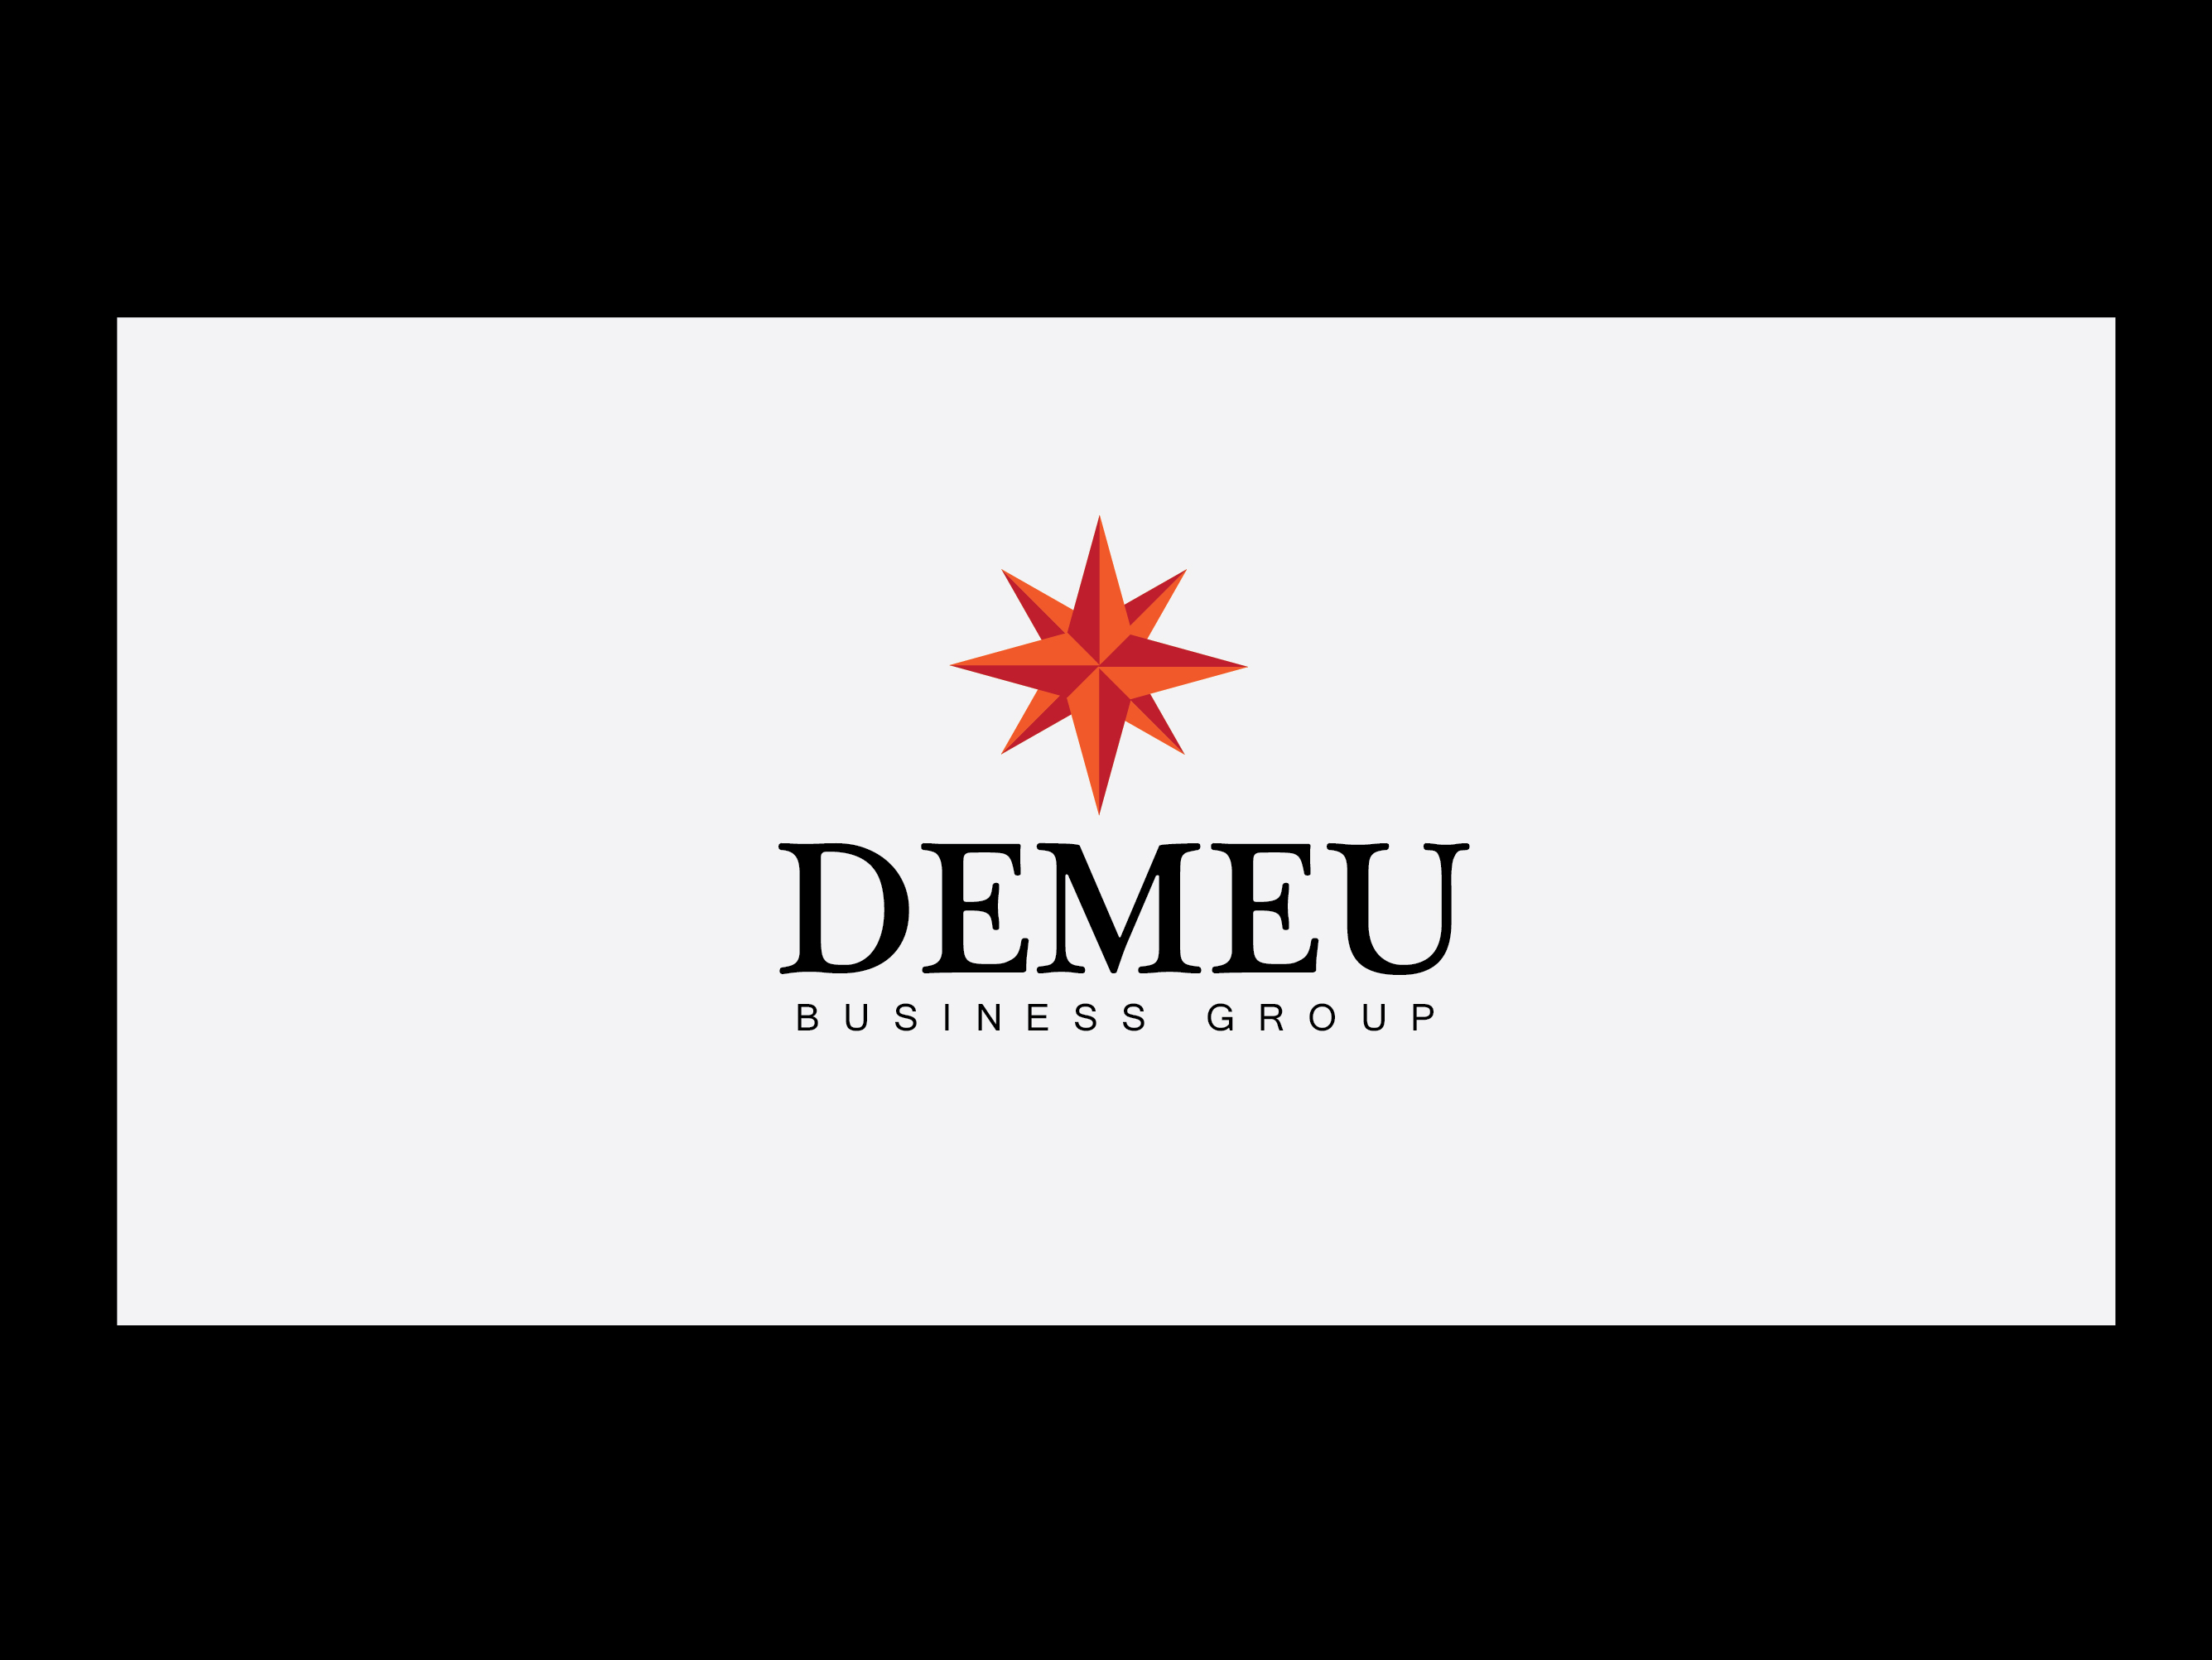 Logo Design by Kyaw Min Khaing - Entry No. 154 in the Logo Design Contest Captivating Logo Design for DEMEU Business Group.